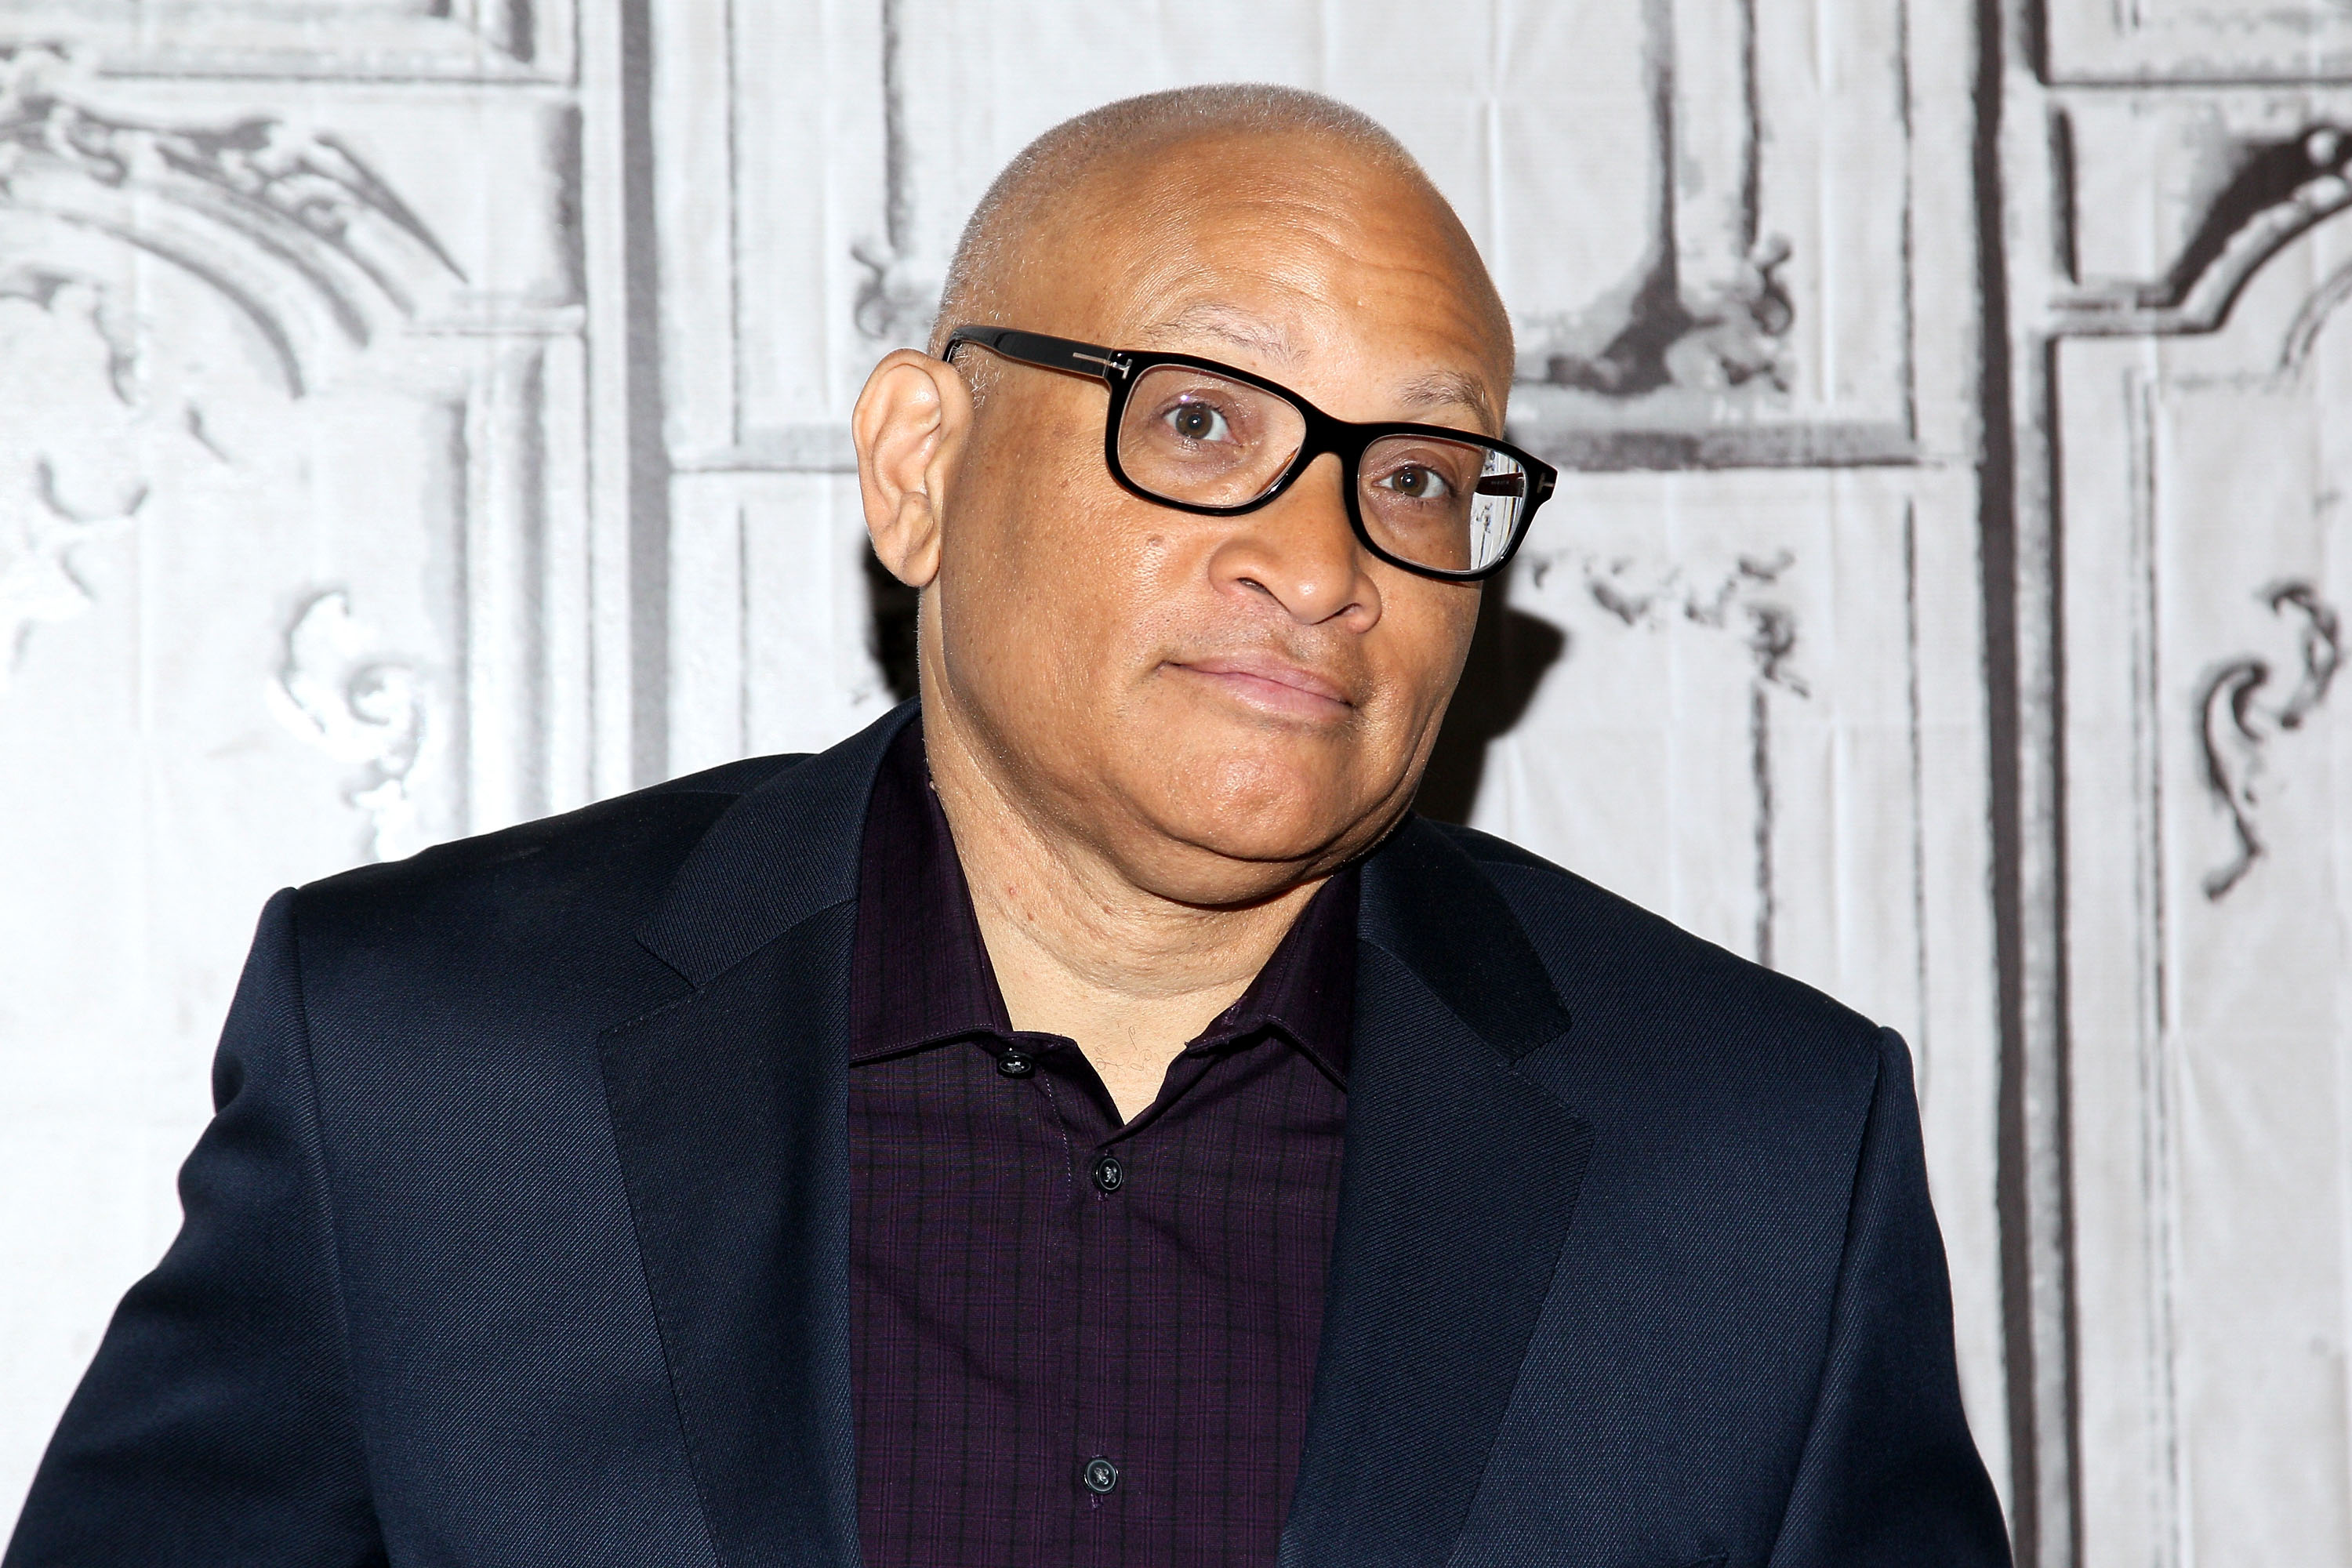 Larry Wilmore visits AOL Build Presents at AOL Studios In New York on September 25, 2015 in New York City.